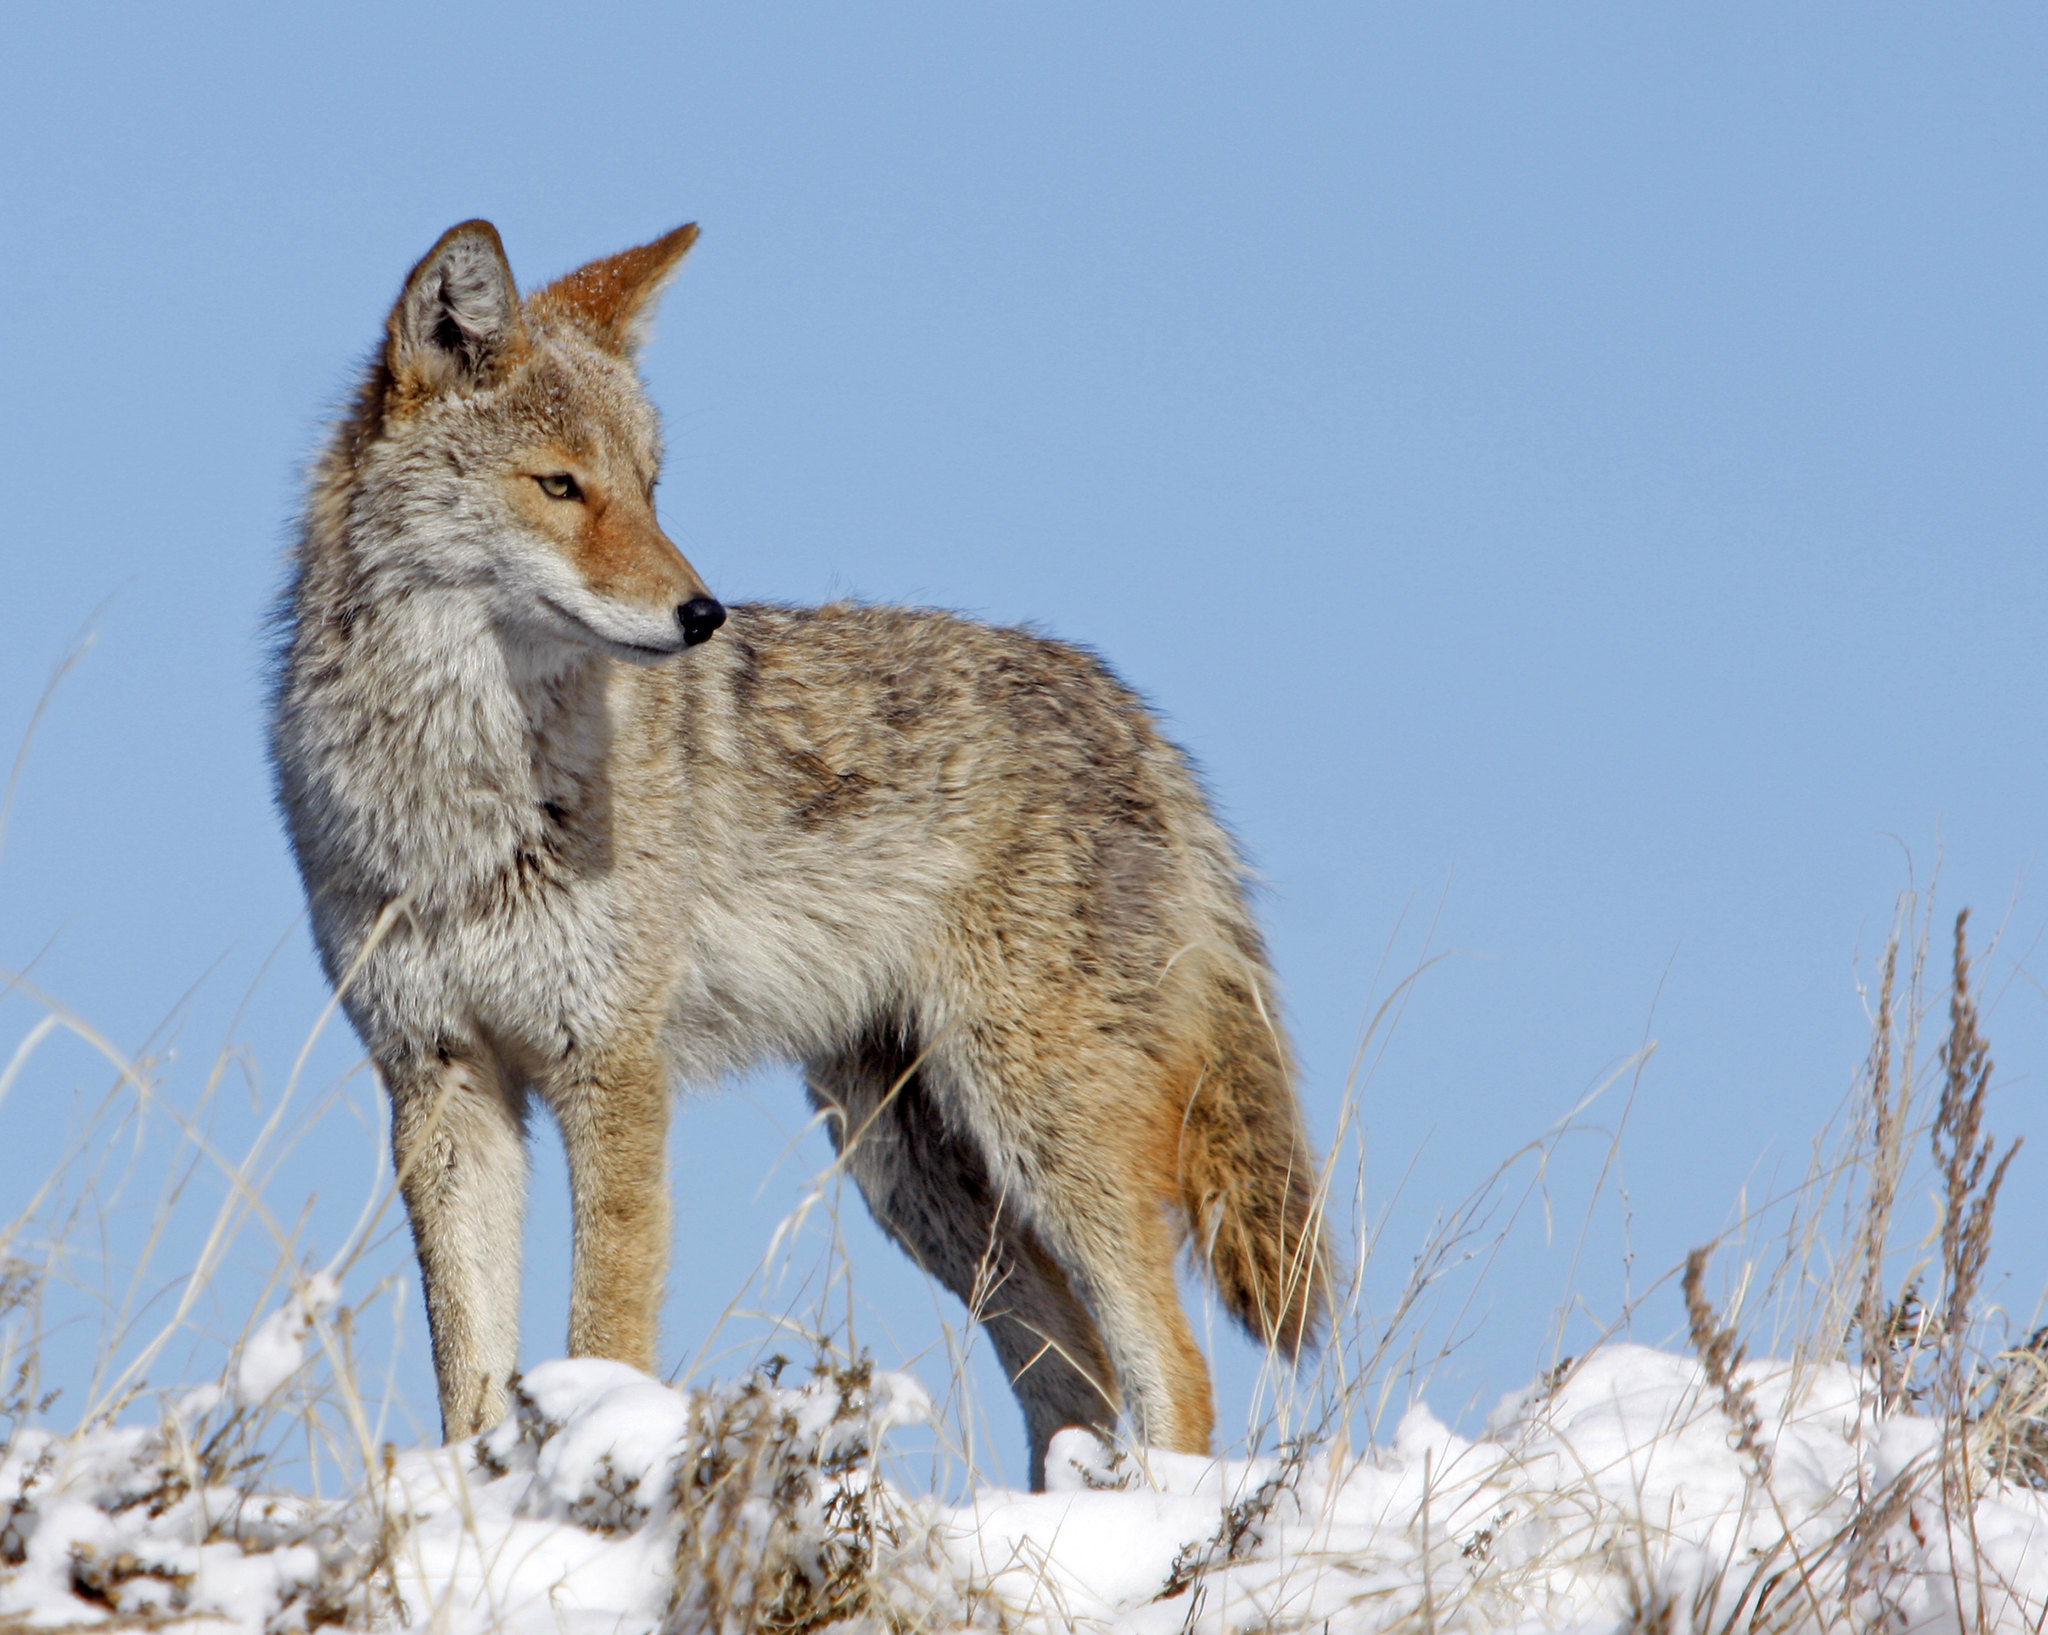 Free download high resolution image - free image free photo free stock image public domain picture -Coyote